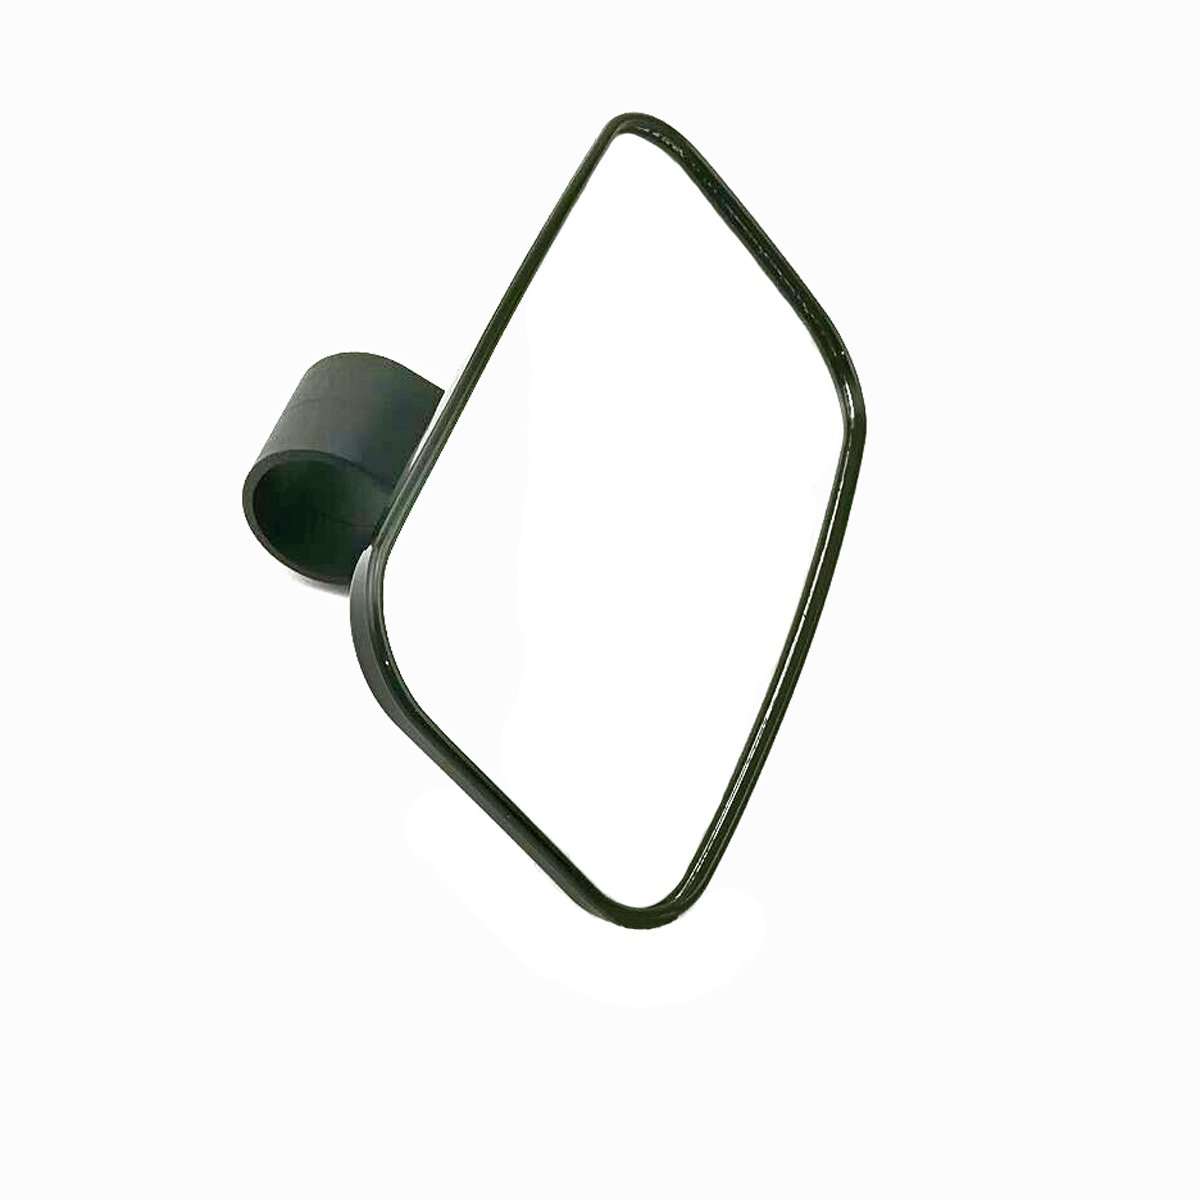 OKSTNO UTV Rear View Mirror for 1.5'' - 2'' Roll Cage with Shatter-Proof Tempered Glass Fits to Polaris Ranger,RZR Can Am Commander,Maverick Yamaha Viking,Rhino,Honda,Gator,Mirrors by OKSTNO (Image #2)